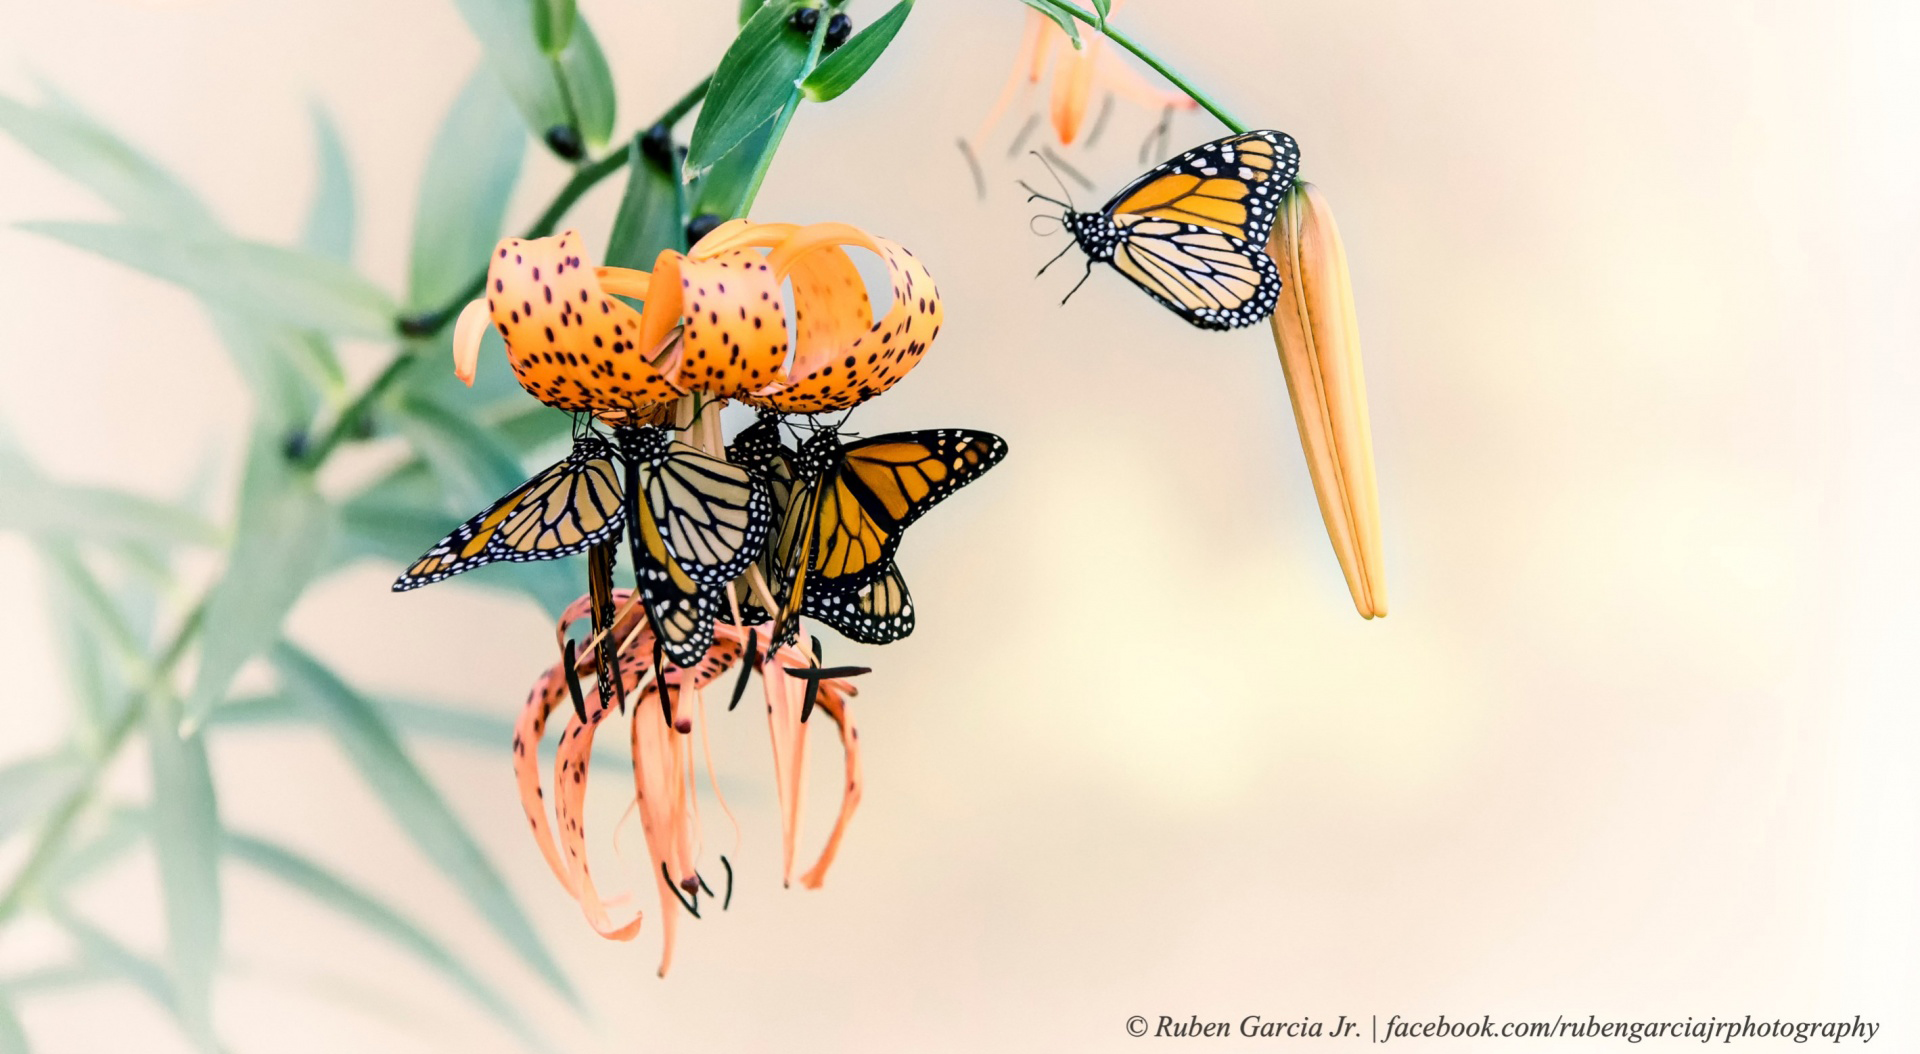 Flowers and butterflies 52106